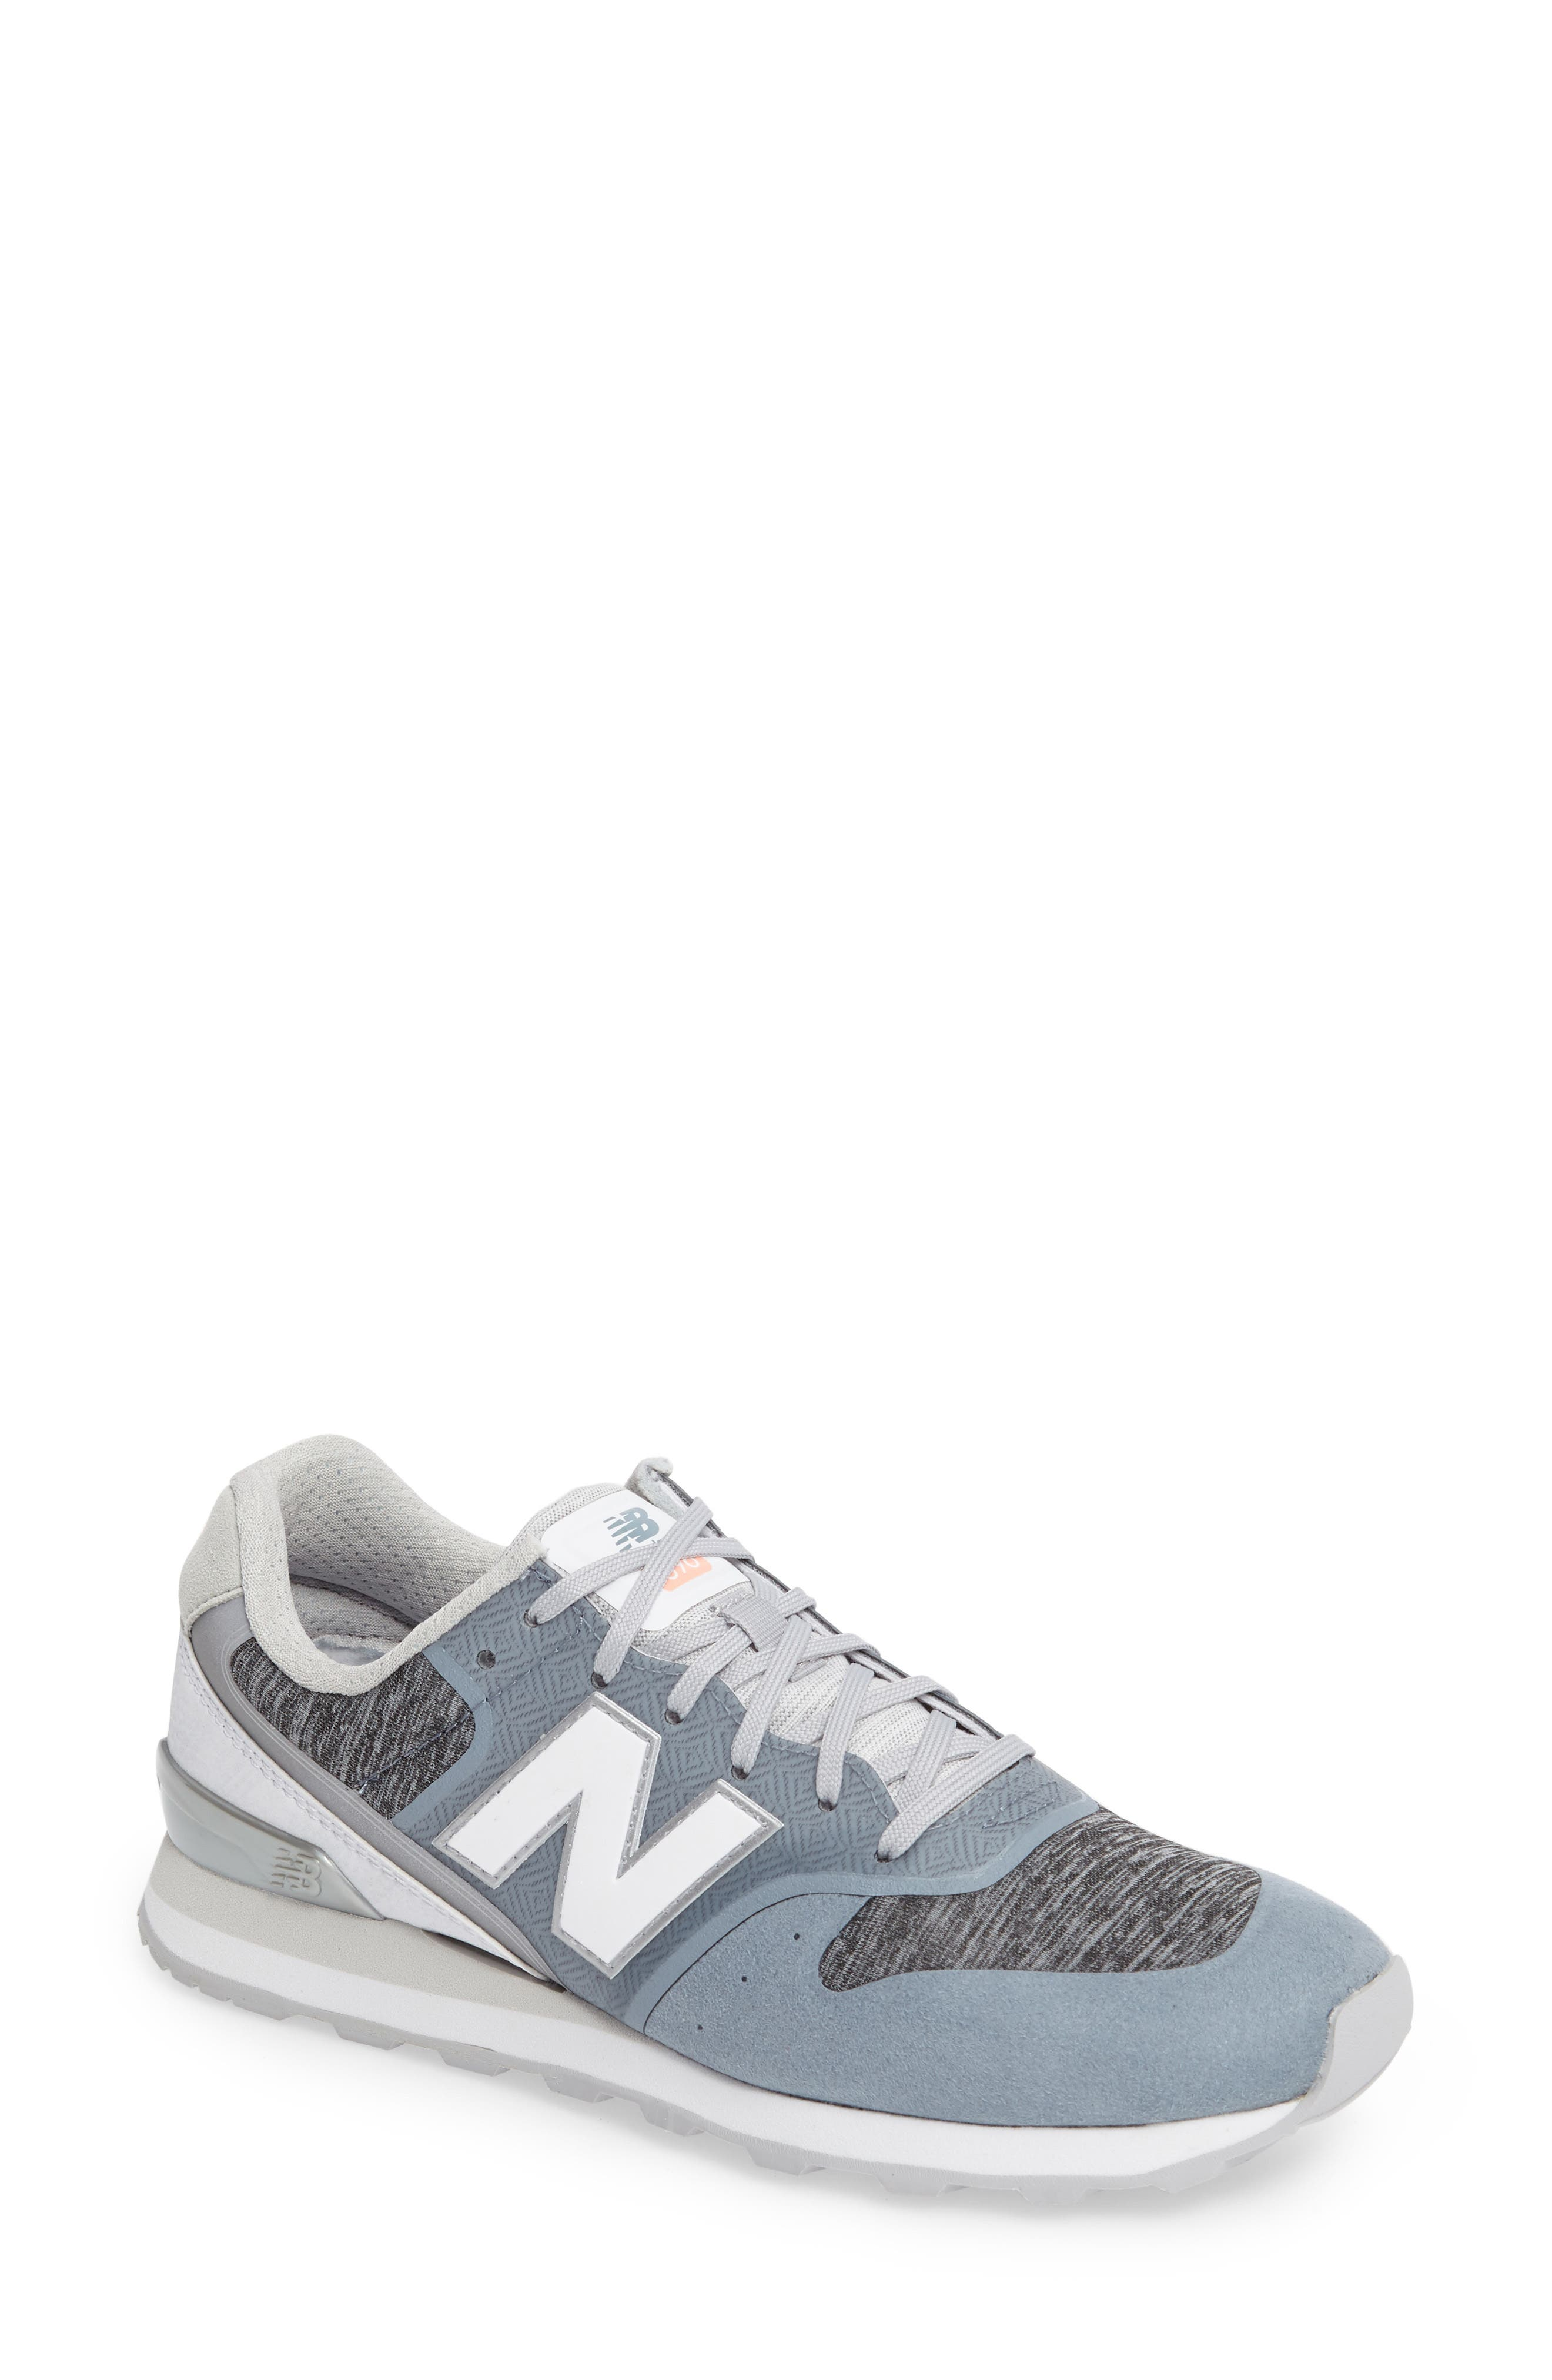 Alternate Image 1 Selected - New Balance 696 Re-Engineered Sneaker (Women)